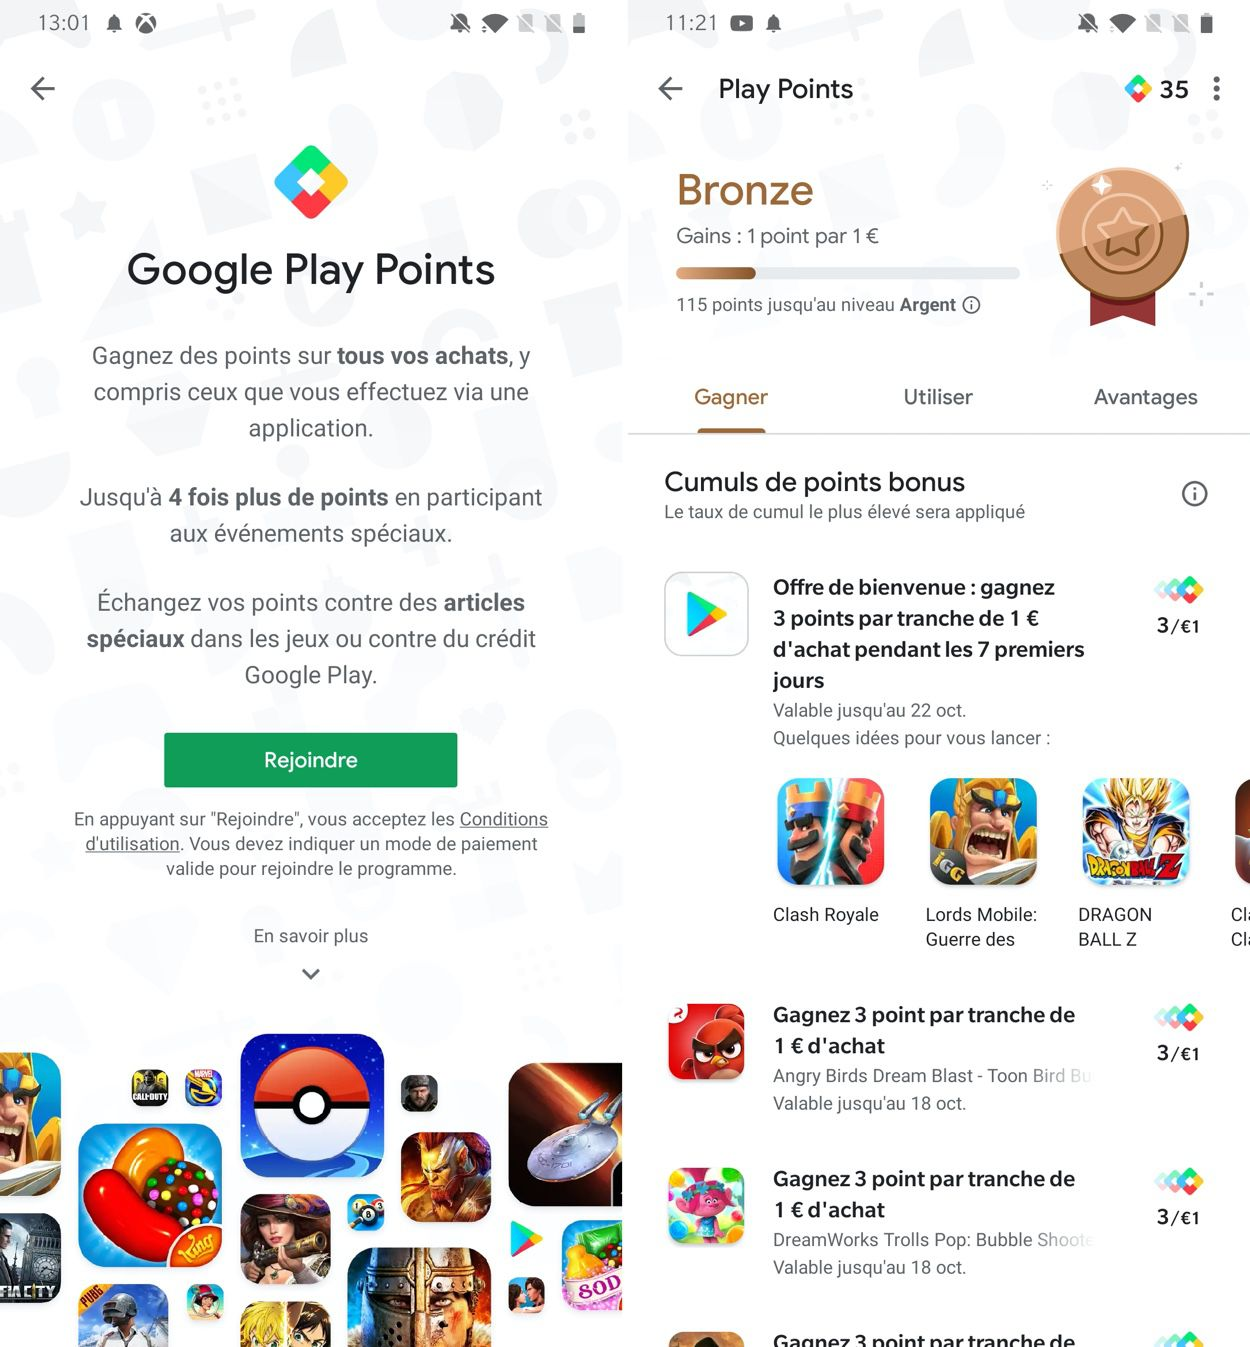 mg 27bc3930 w2170 w828 w1250 - Google Play Points: a loyalty program to encourage Android users to spend